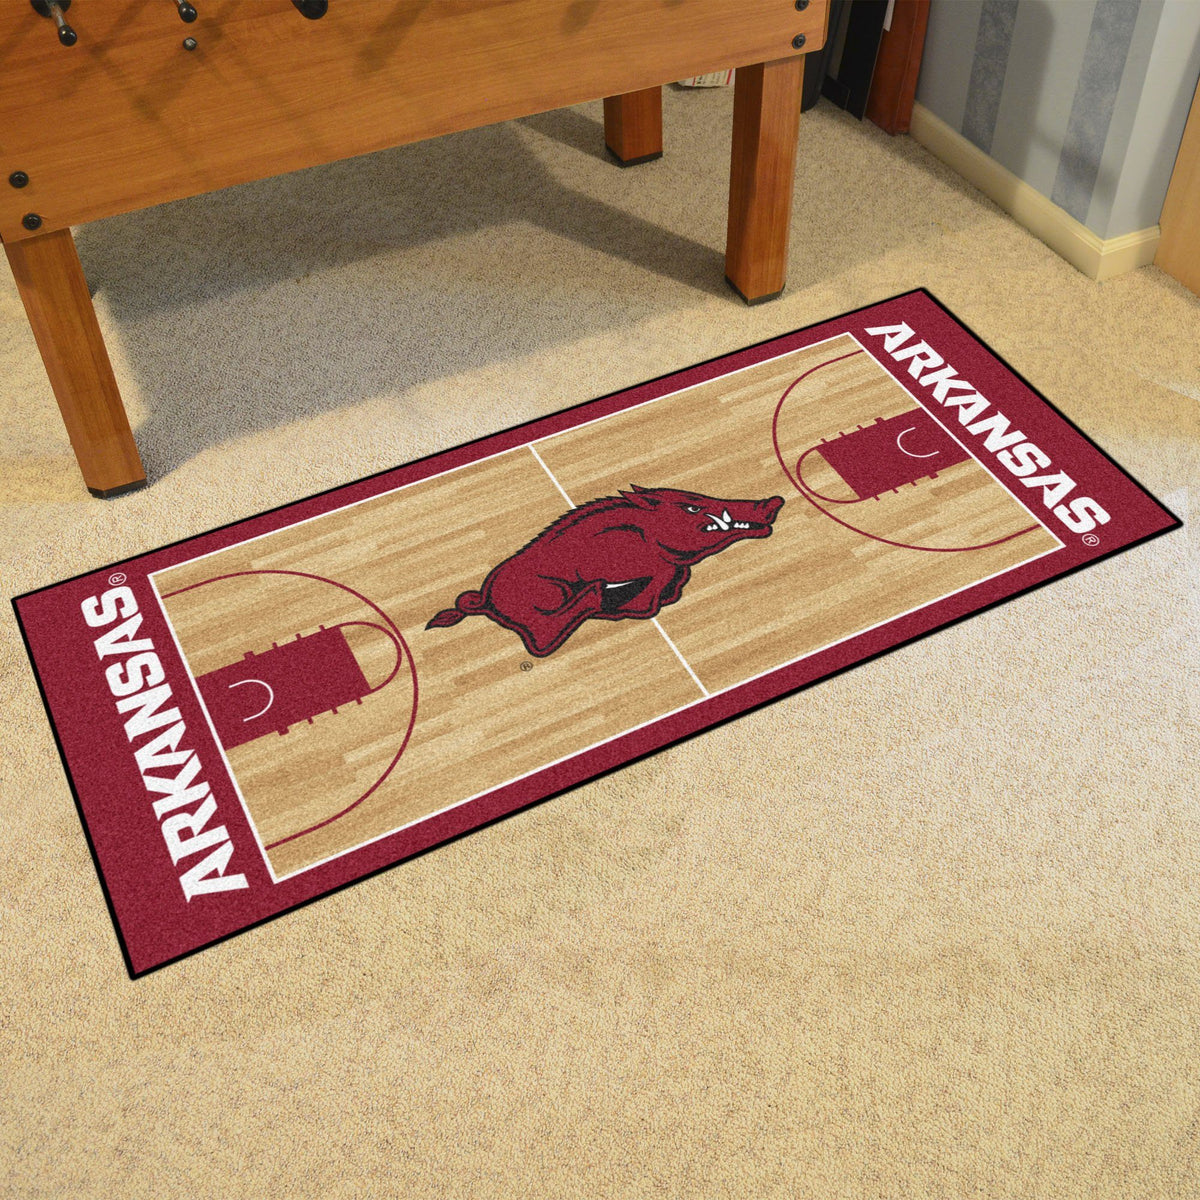 Collegiate - NCAA Basketball Runner Collegiate Mats, Rectangular Mats, NCAA Basketball Runner, Collegiate, Home Fan Mats Arkansas